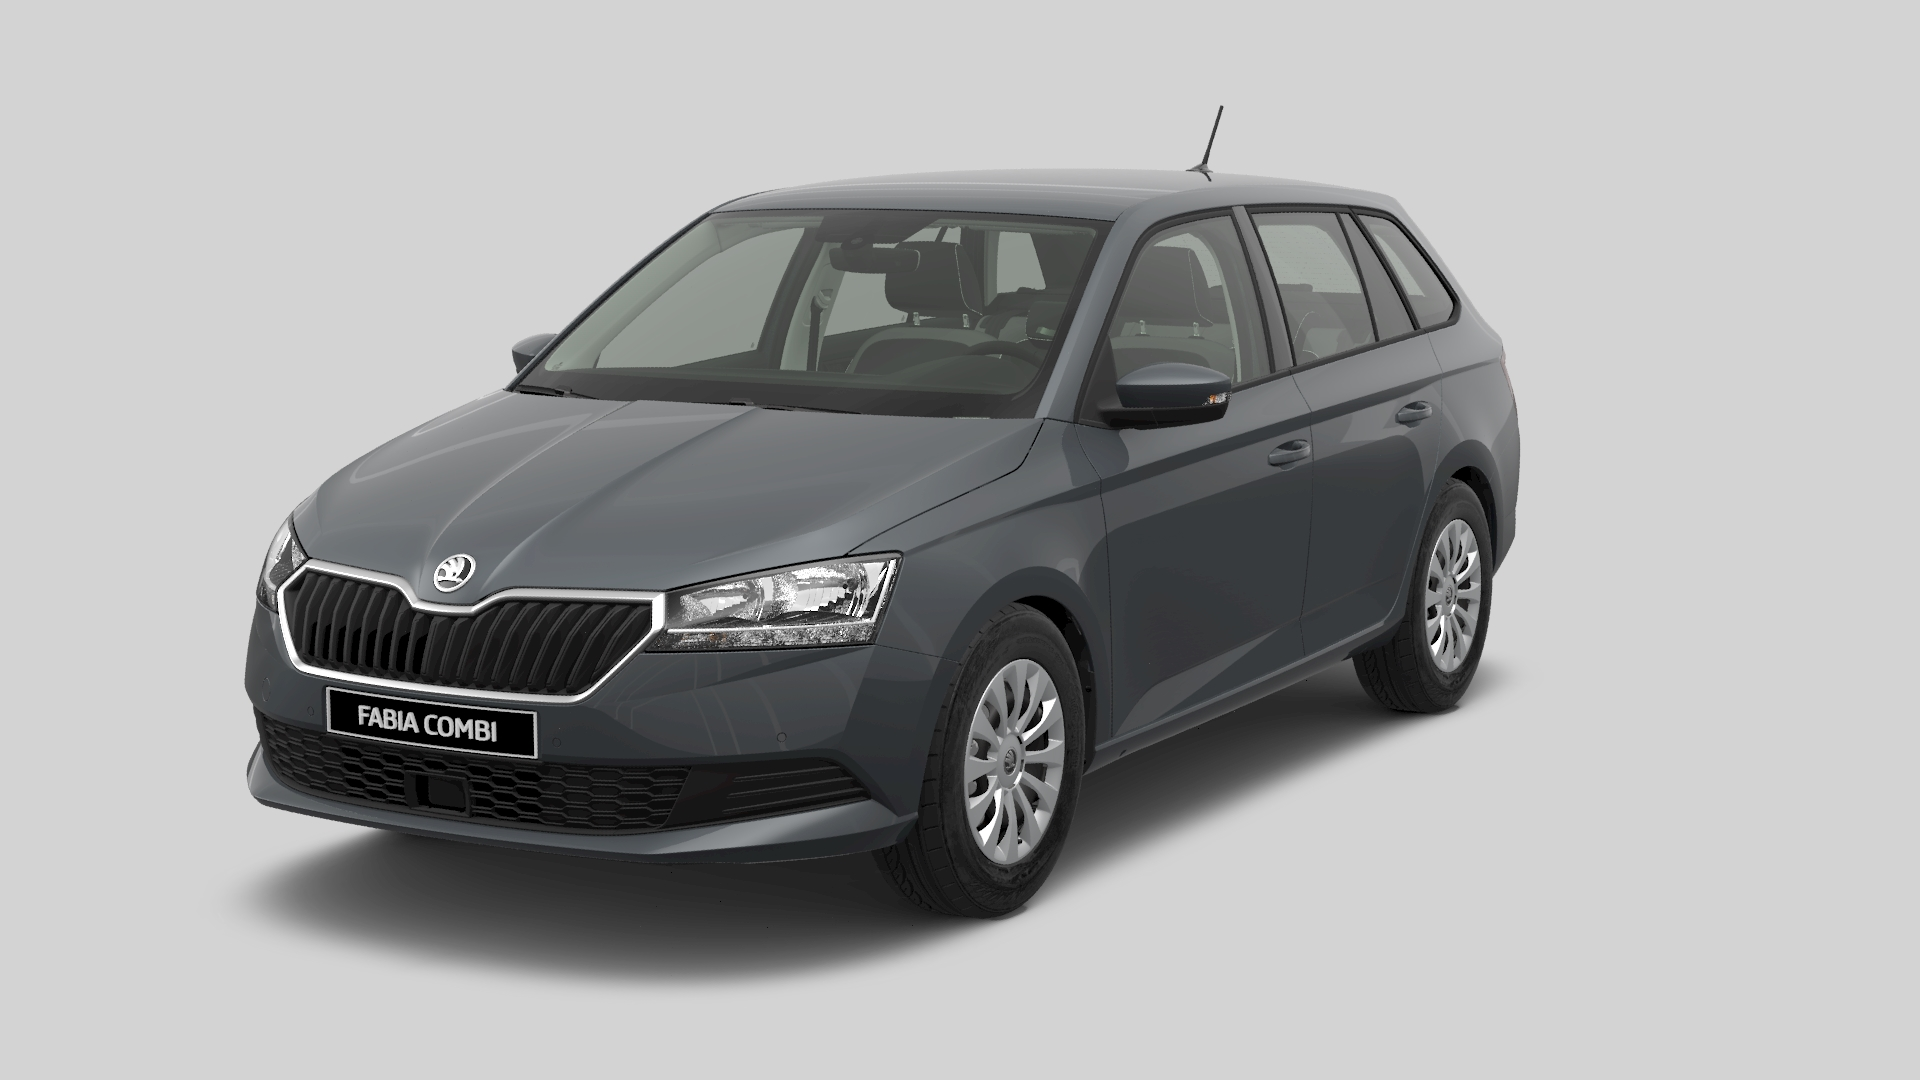 Fabia Combi Ambition 1,0 TSI 70 kW 5-speed mech.